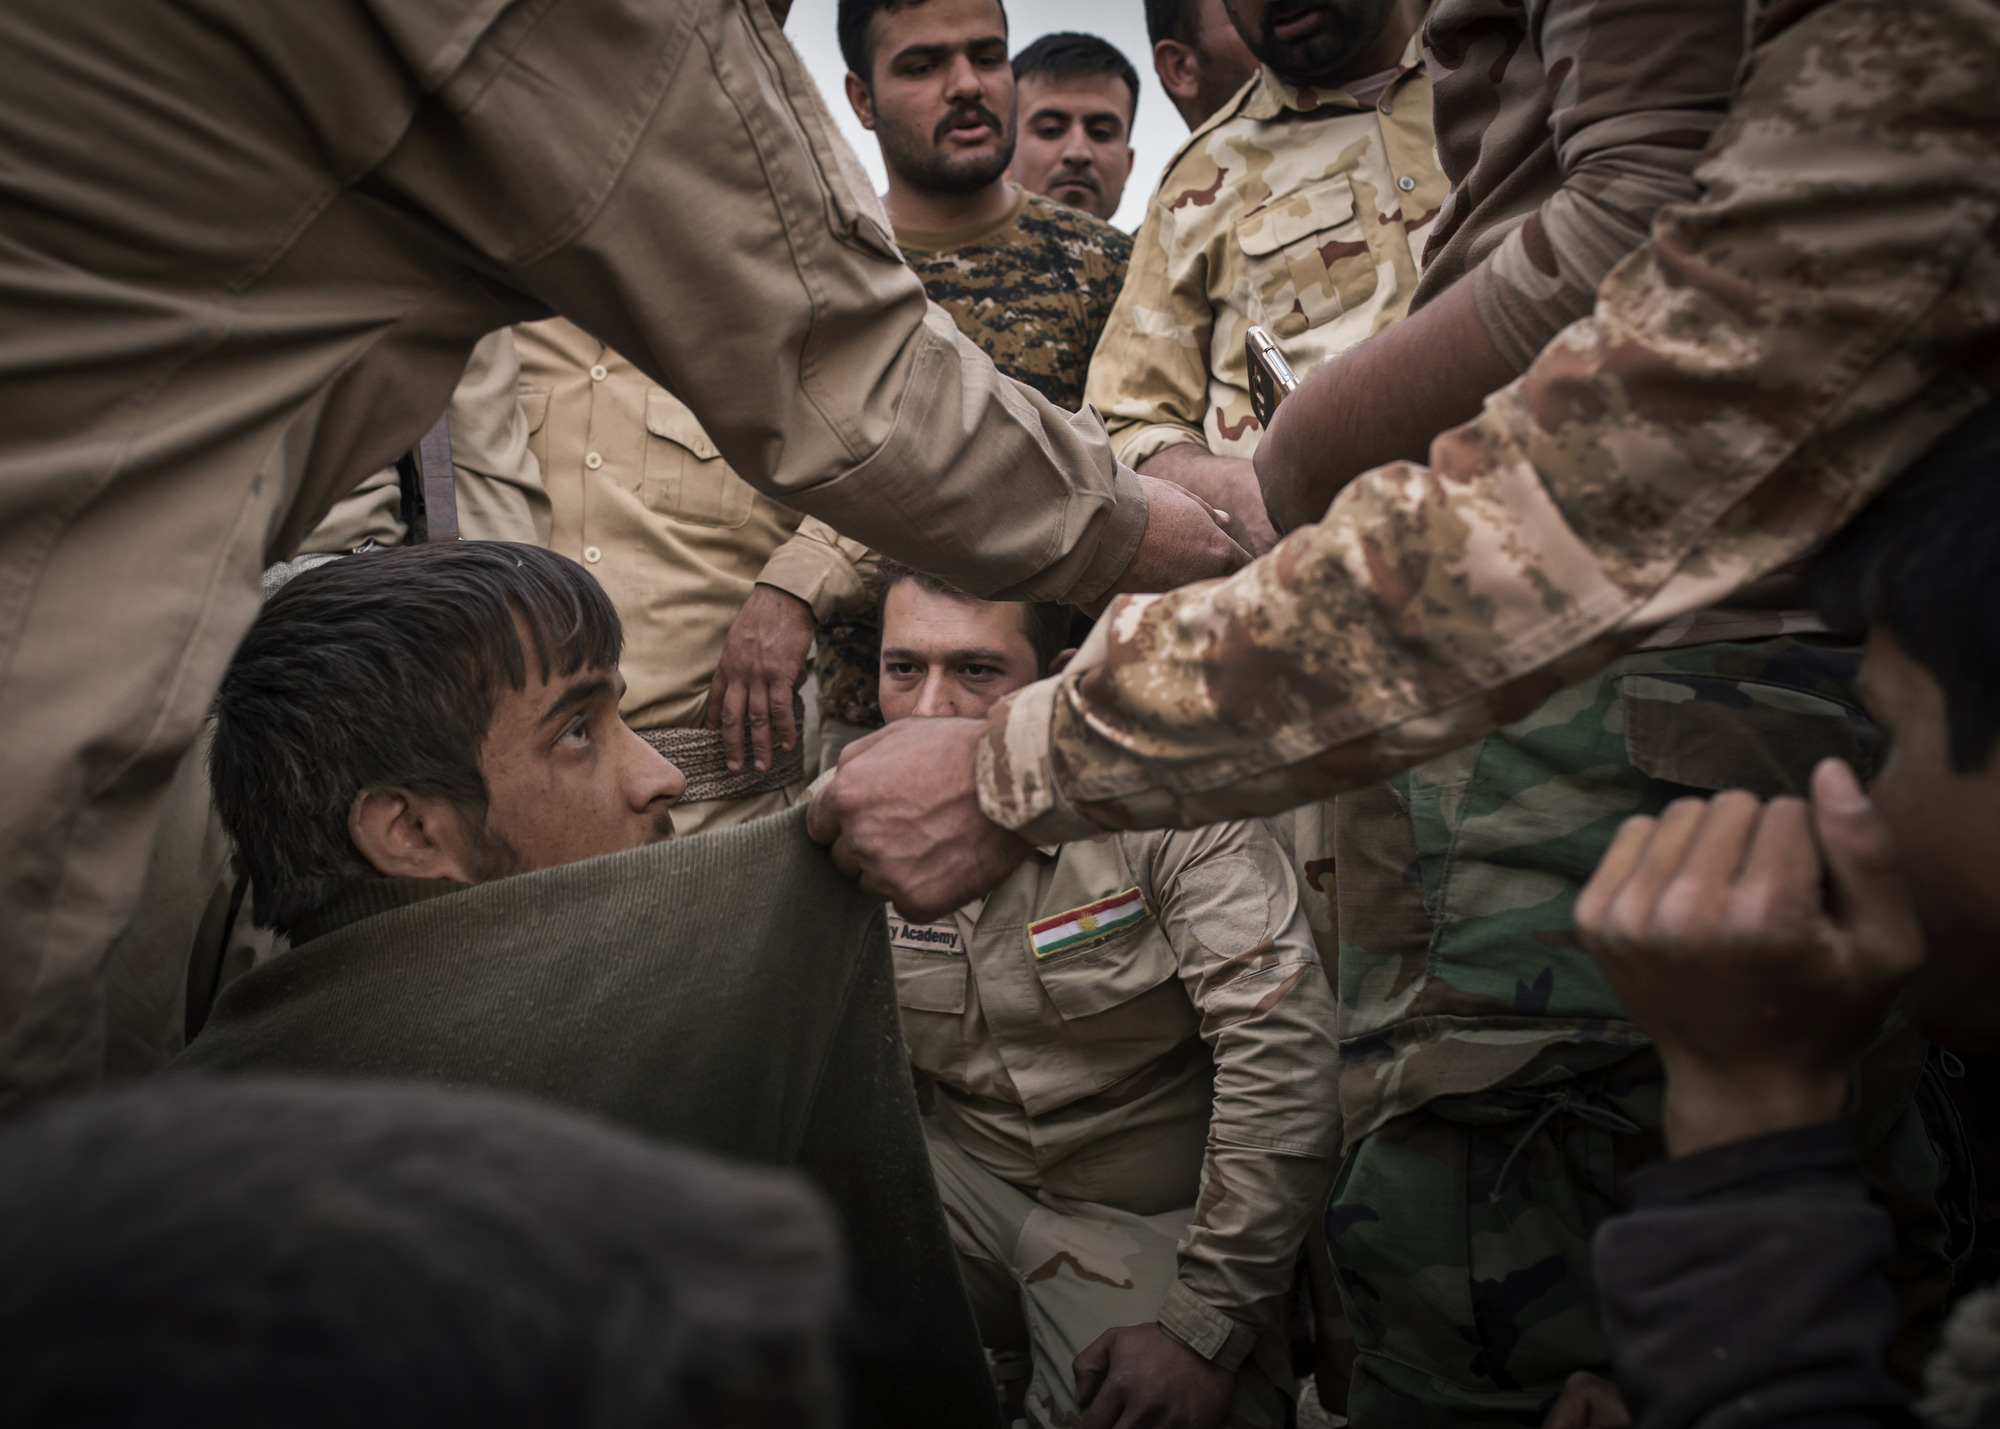 Three Arab boys are interrogated by Kurdish Peshmerga after they crossed a front line from Islamic State held territory.